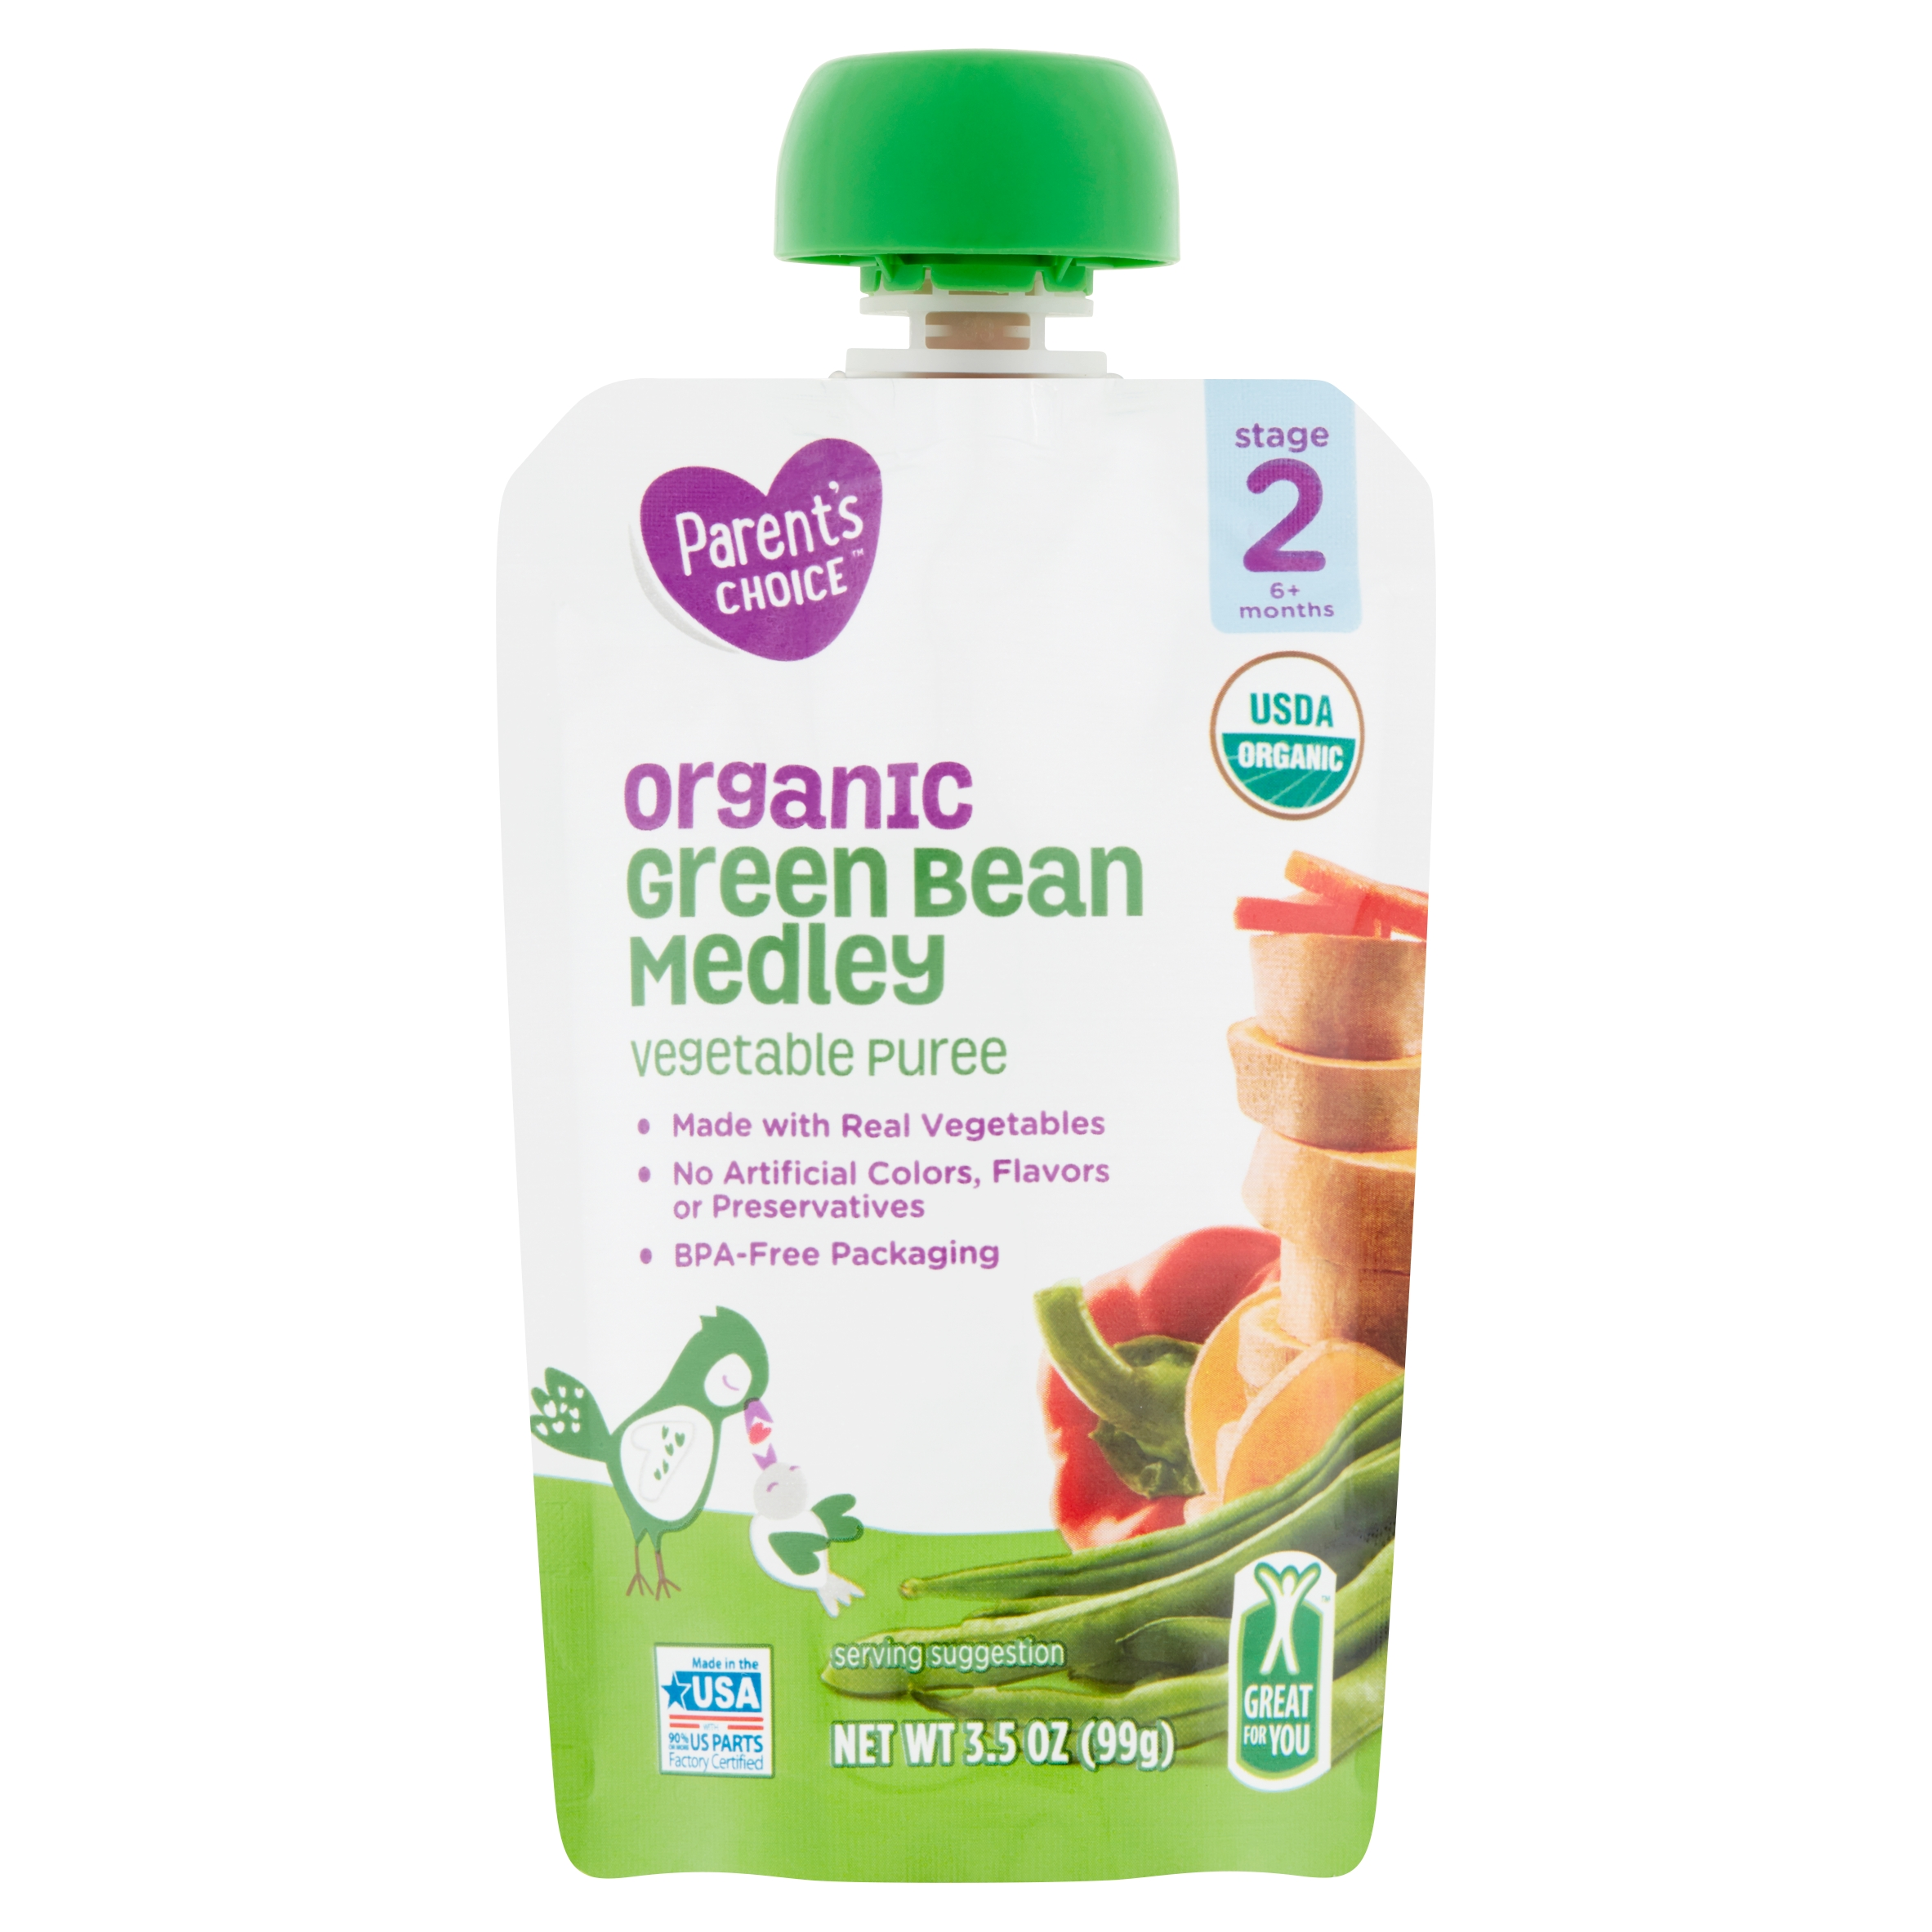 Parent's Choice Organic Green Bean Medley, Stage 2, 3.5 oz Pouch